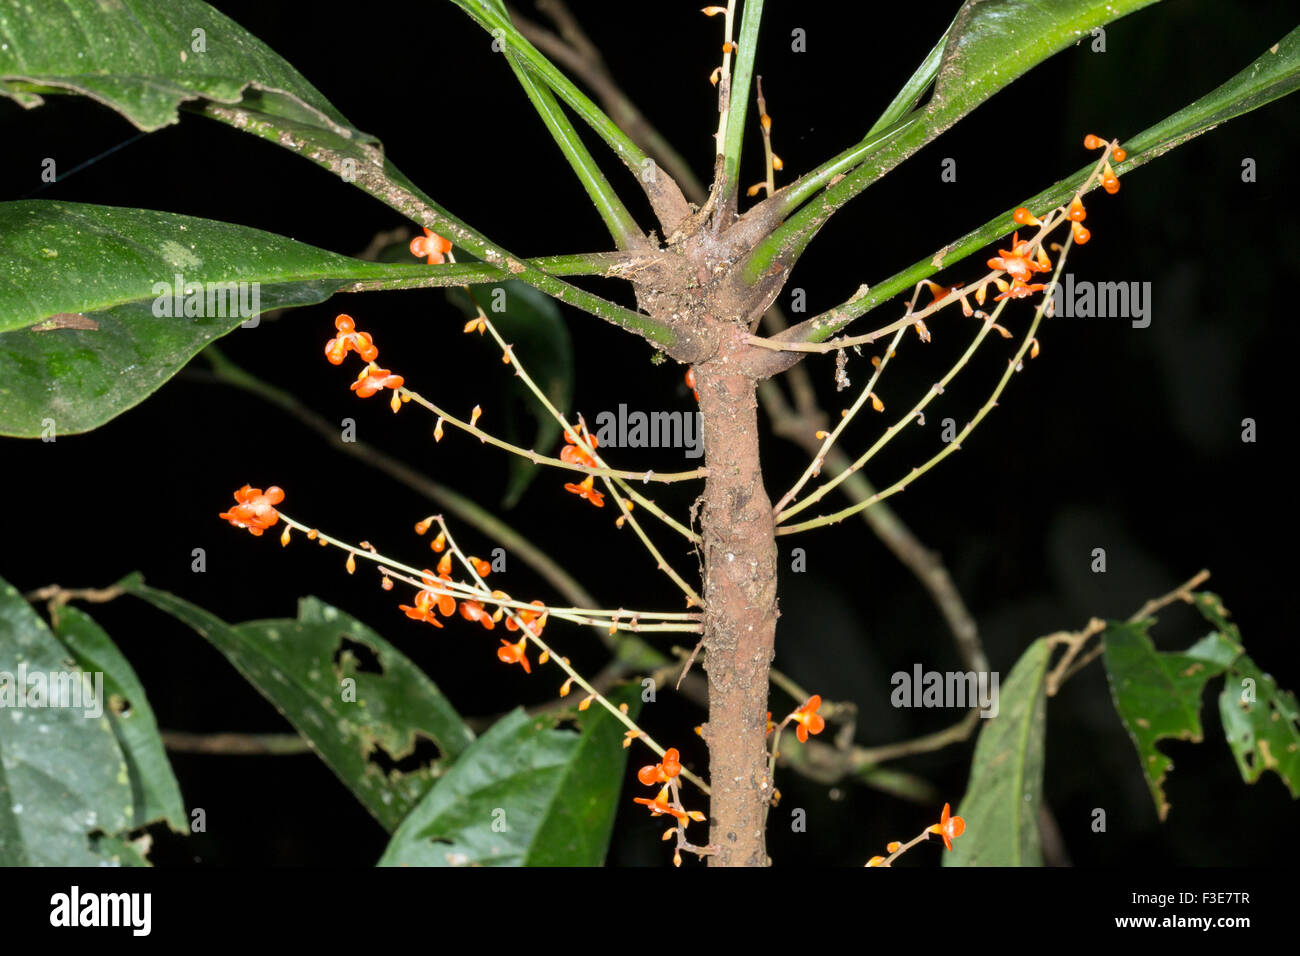 Clavija procera (Theophrastaceae). Used as a snake bite remedy by the Quichua Indians in the Ecuadorian Amazon - Stock Image